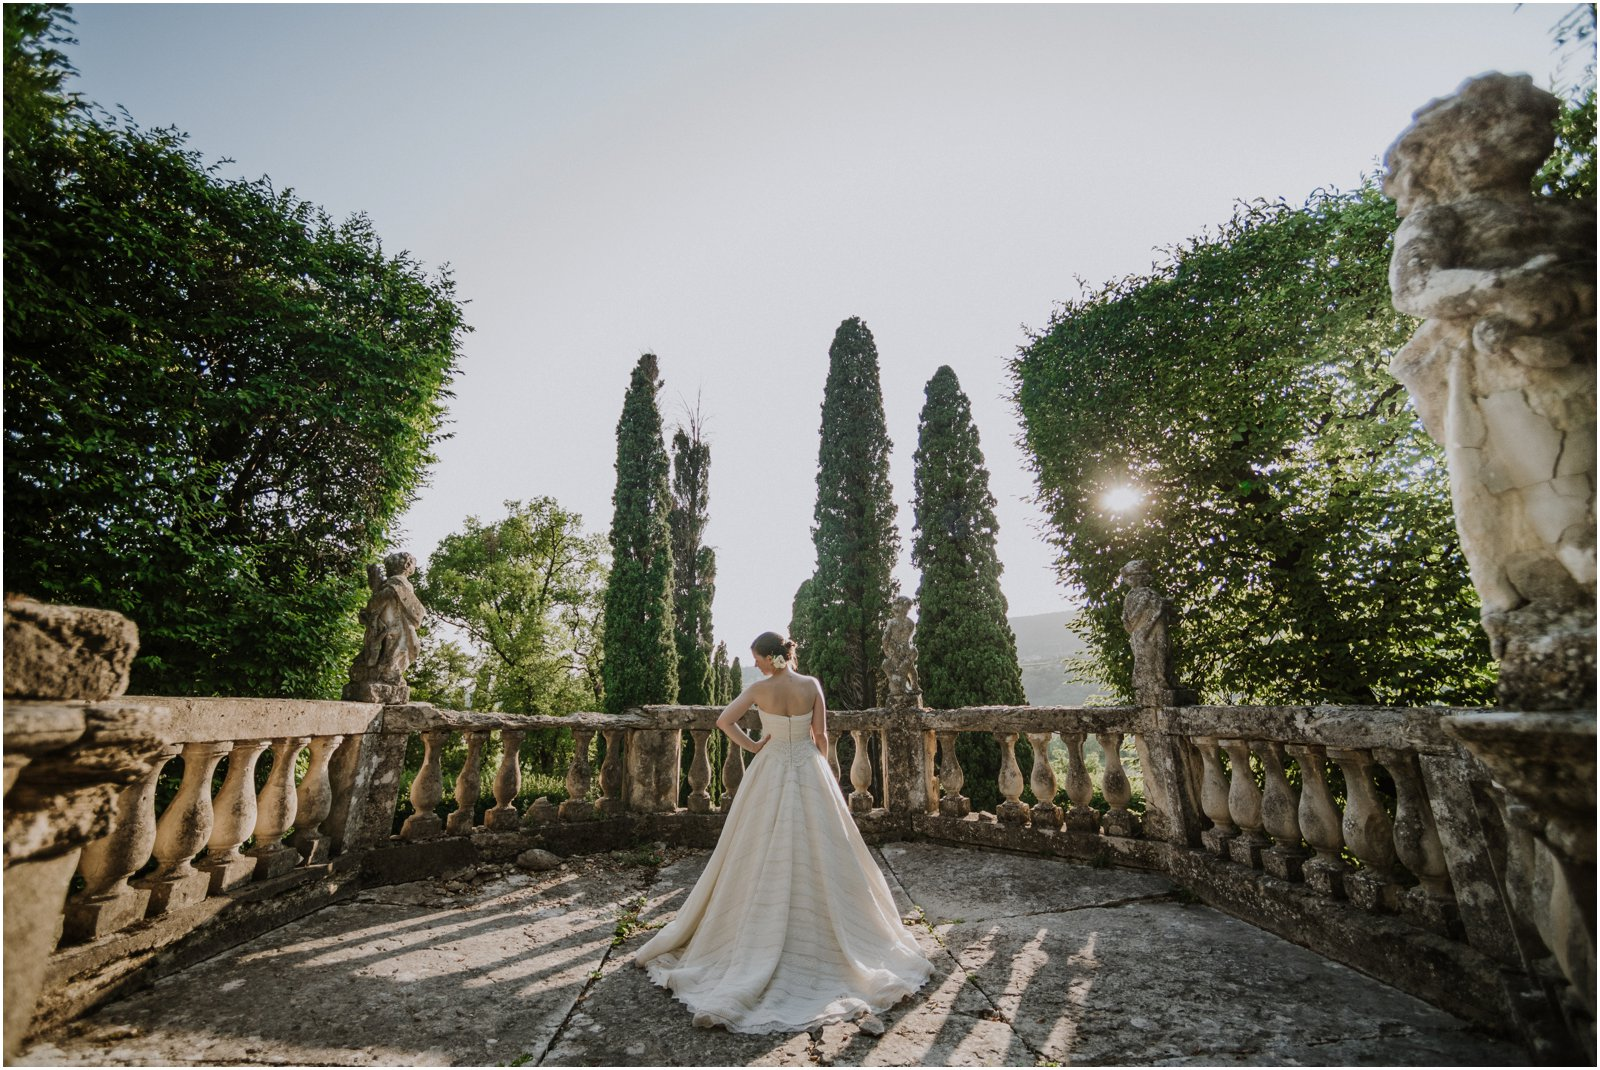 veronasposi foto e video matrimonio verona_0583